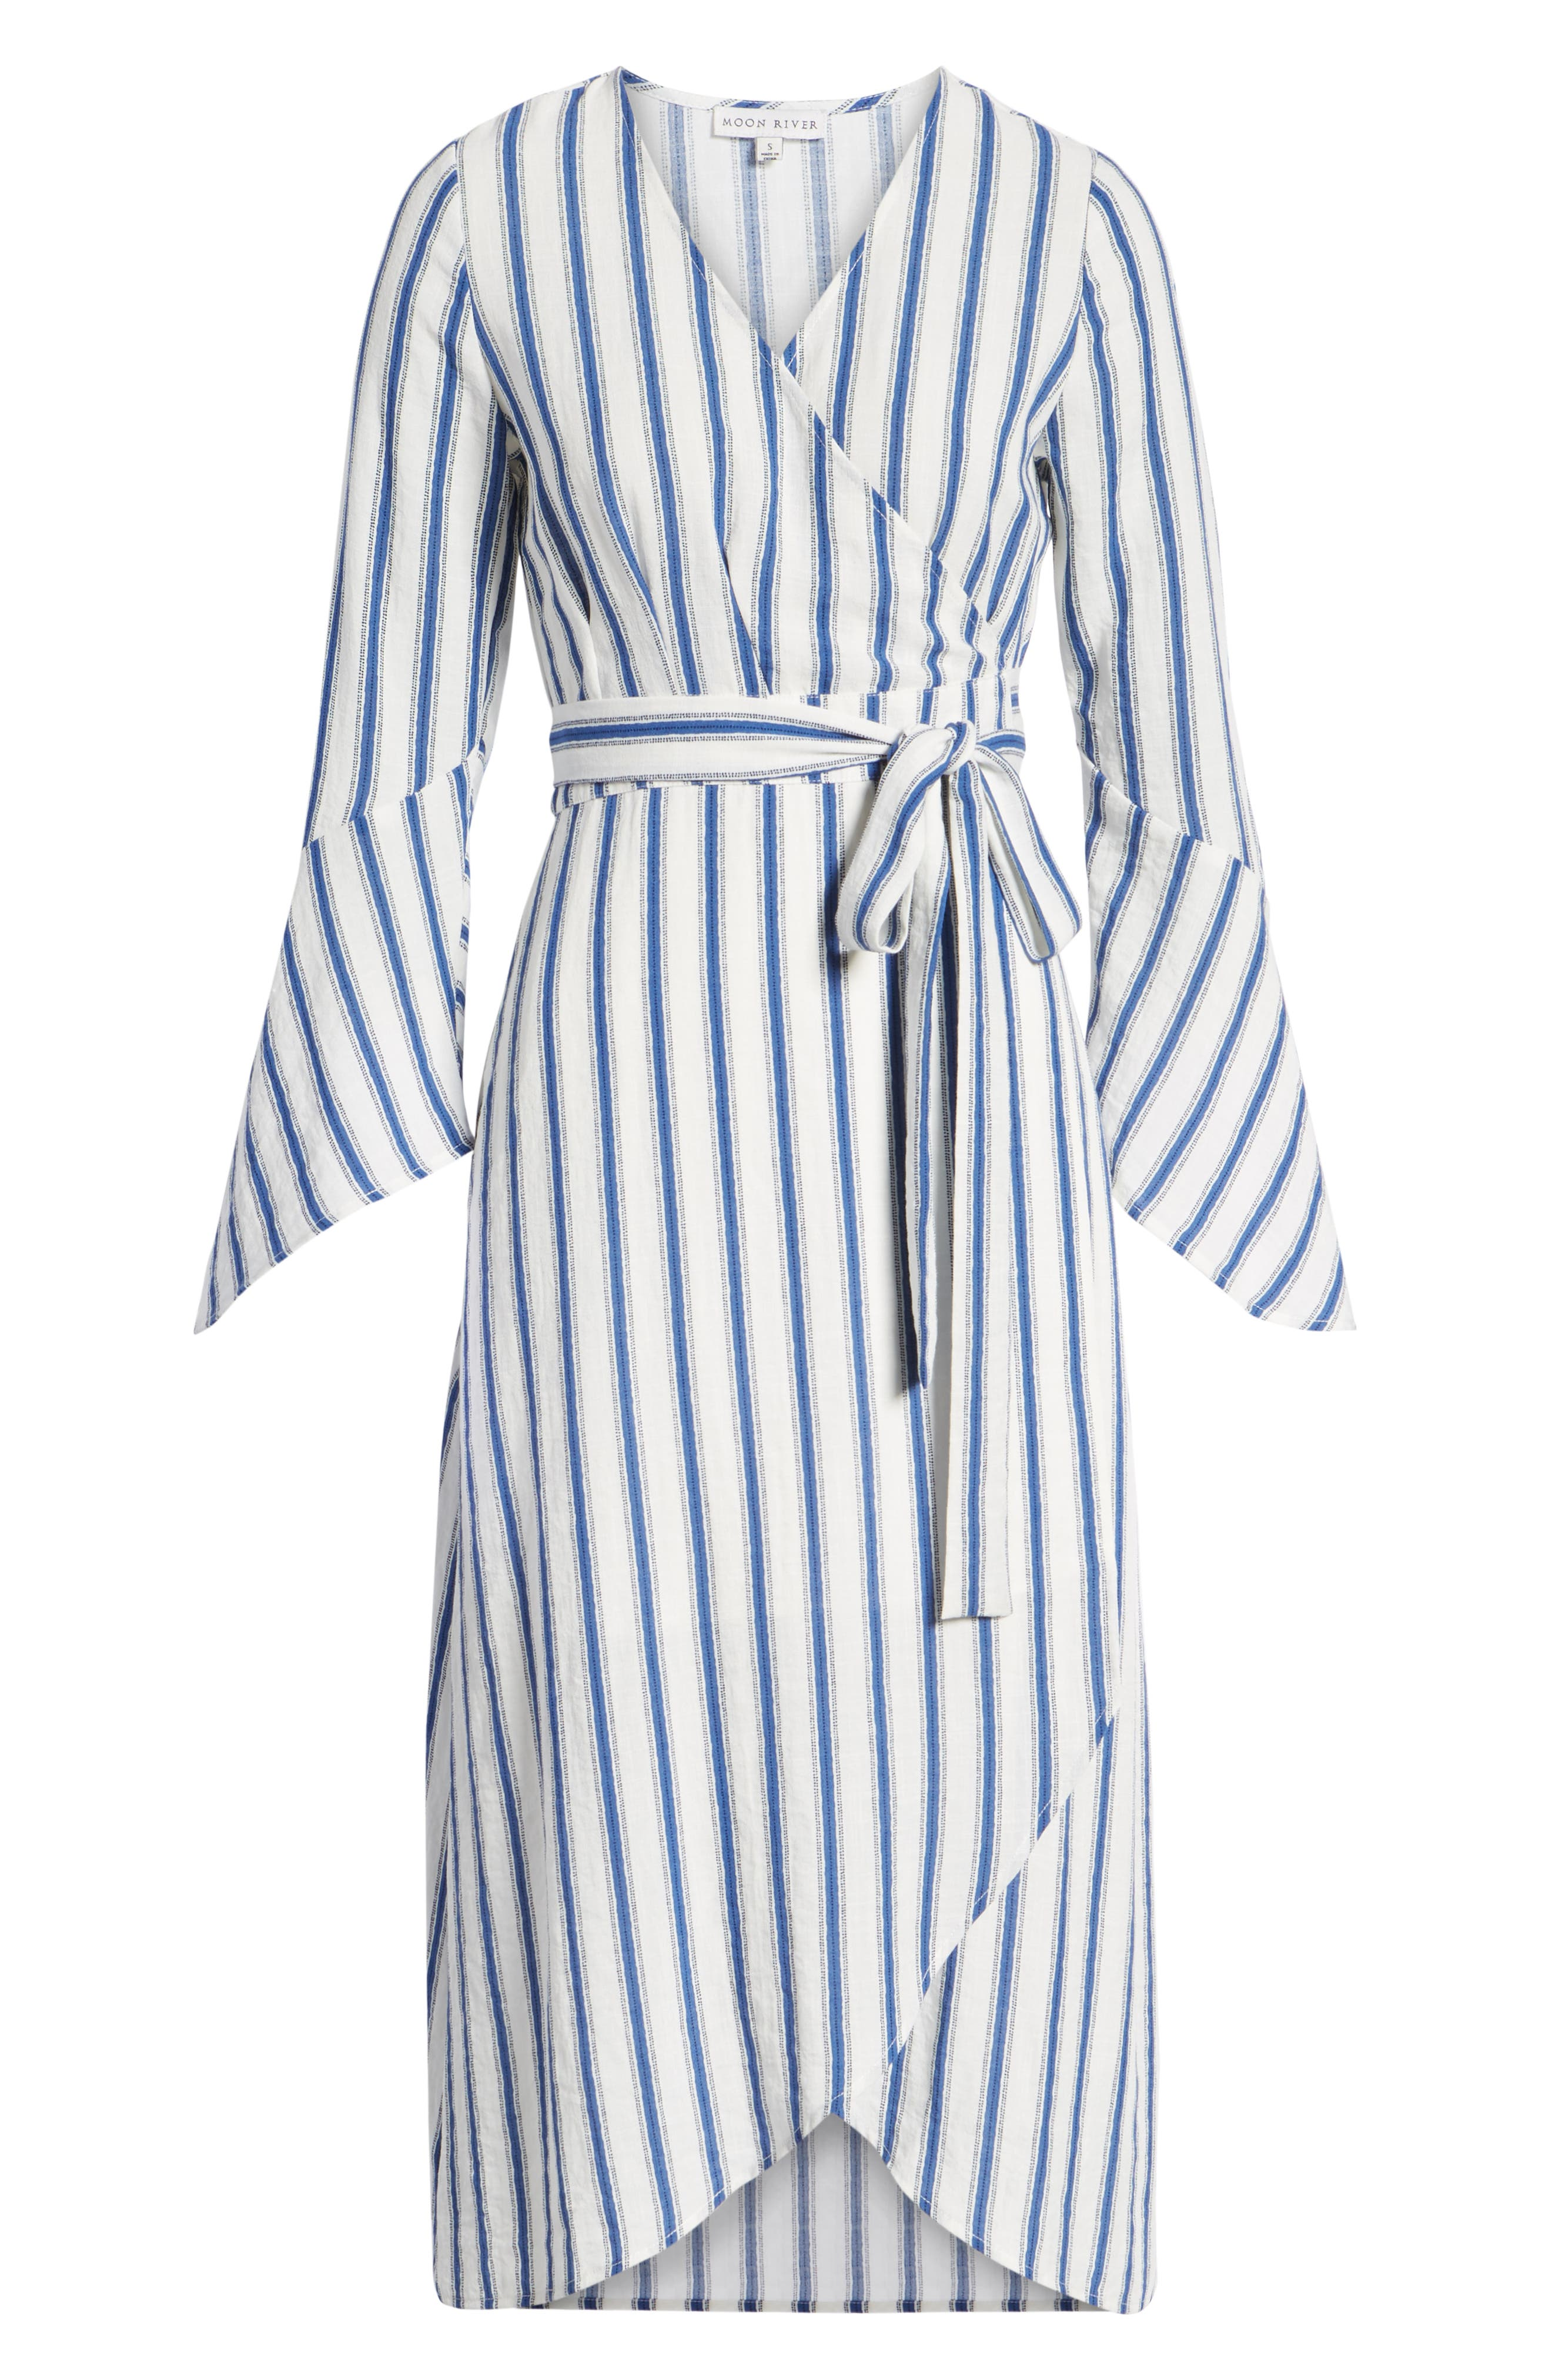 Stripe Flared Sleeve Wrap Dress,                             Alternate thumbnail 7, color,                             400